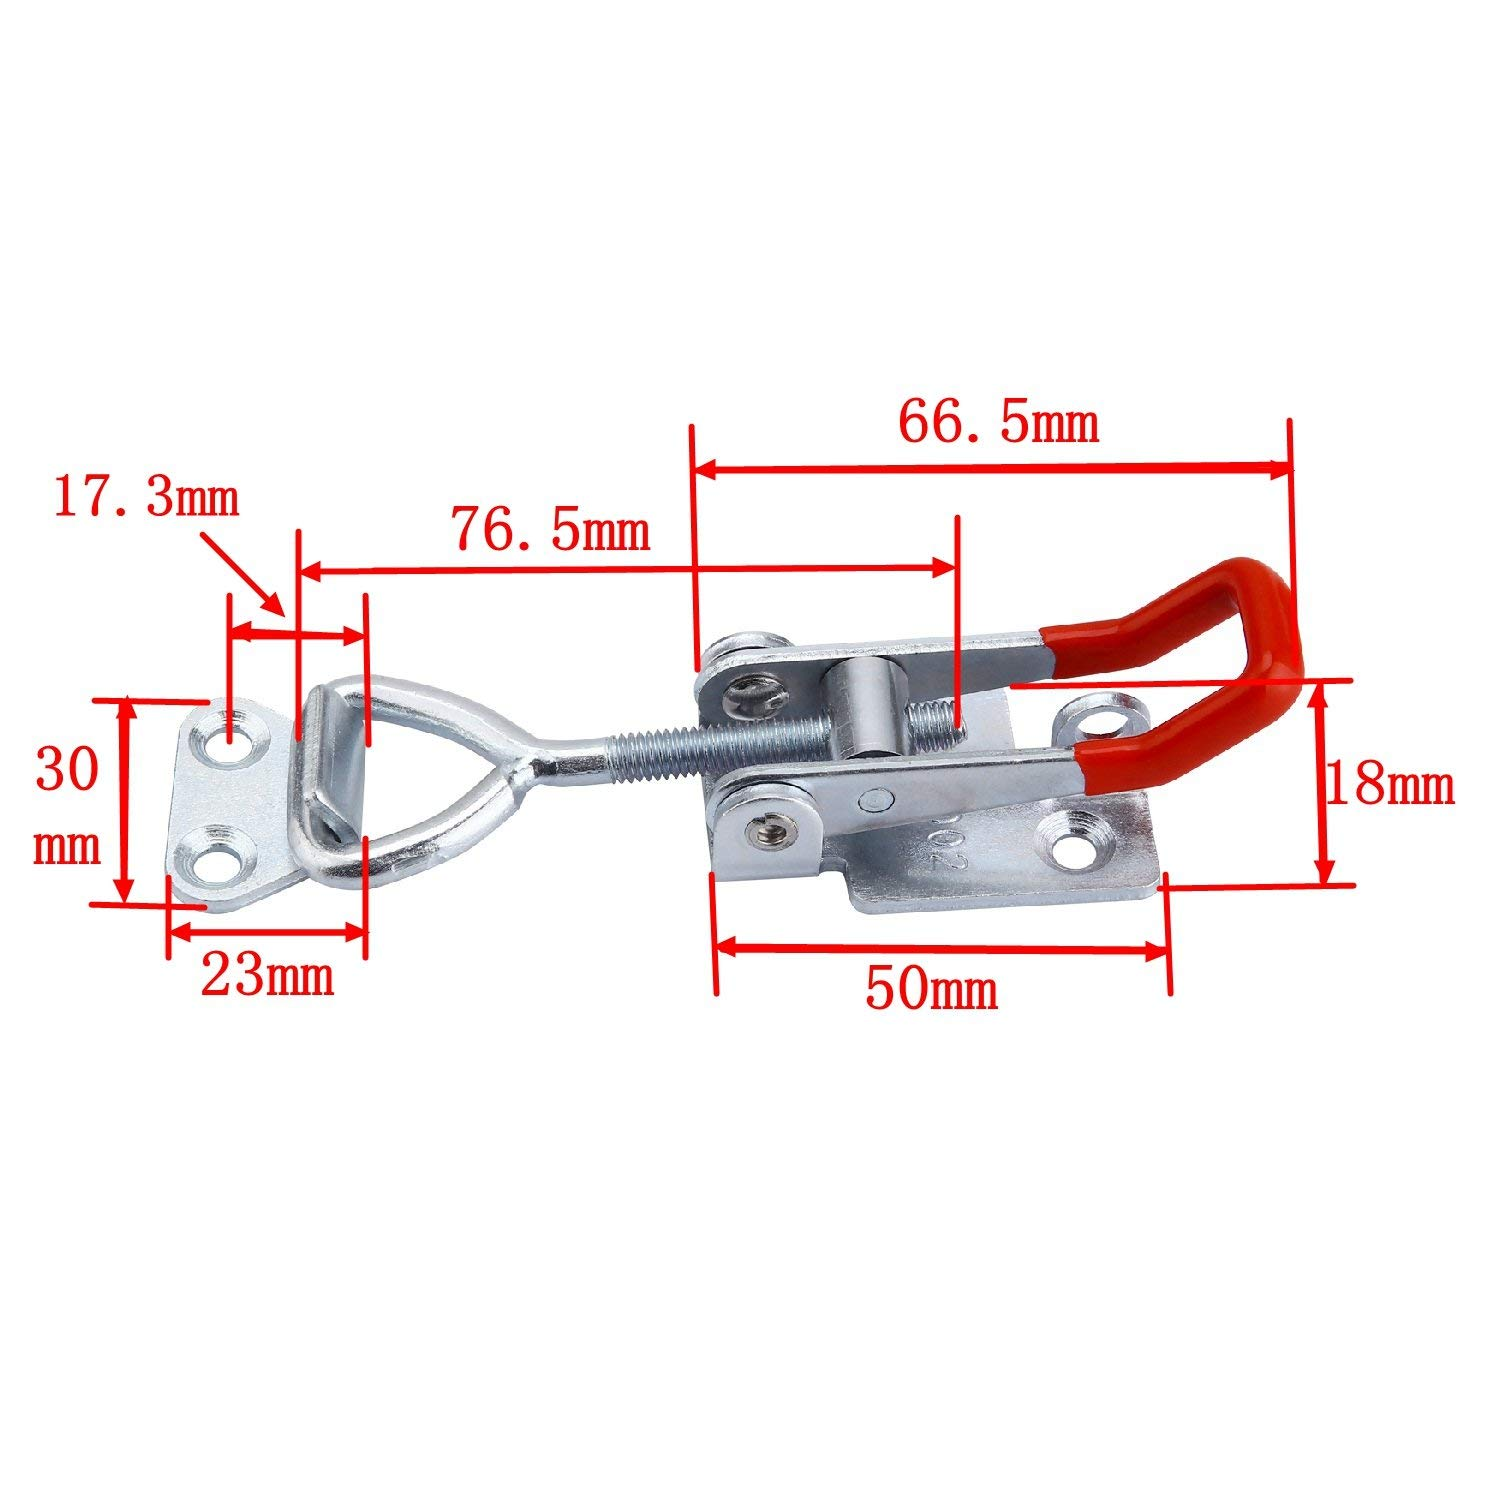 Adjustable Toggle Latch Clamp 4002,7 pack 180Kg 400Lbs Heavy Duty Hand Tool Quick Release Metal Holding Capacity Latch Type.Quick Release Pull Latch, Sturdy Metal Draw Latch